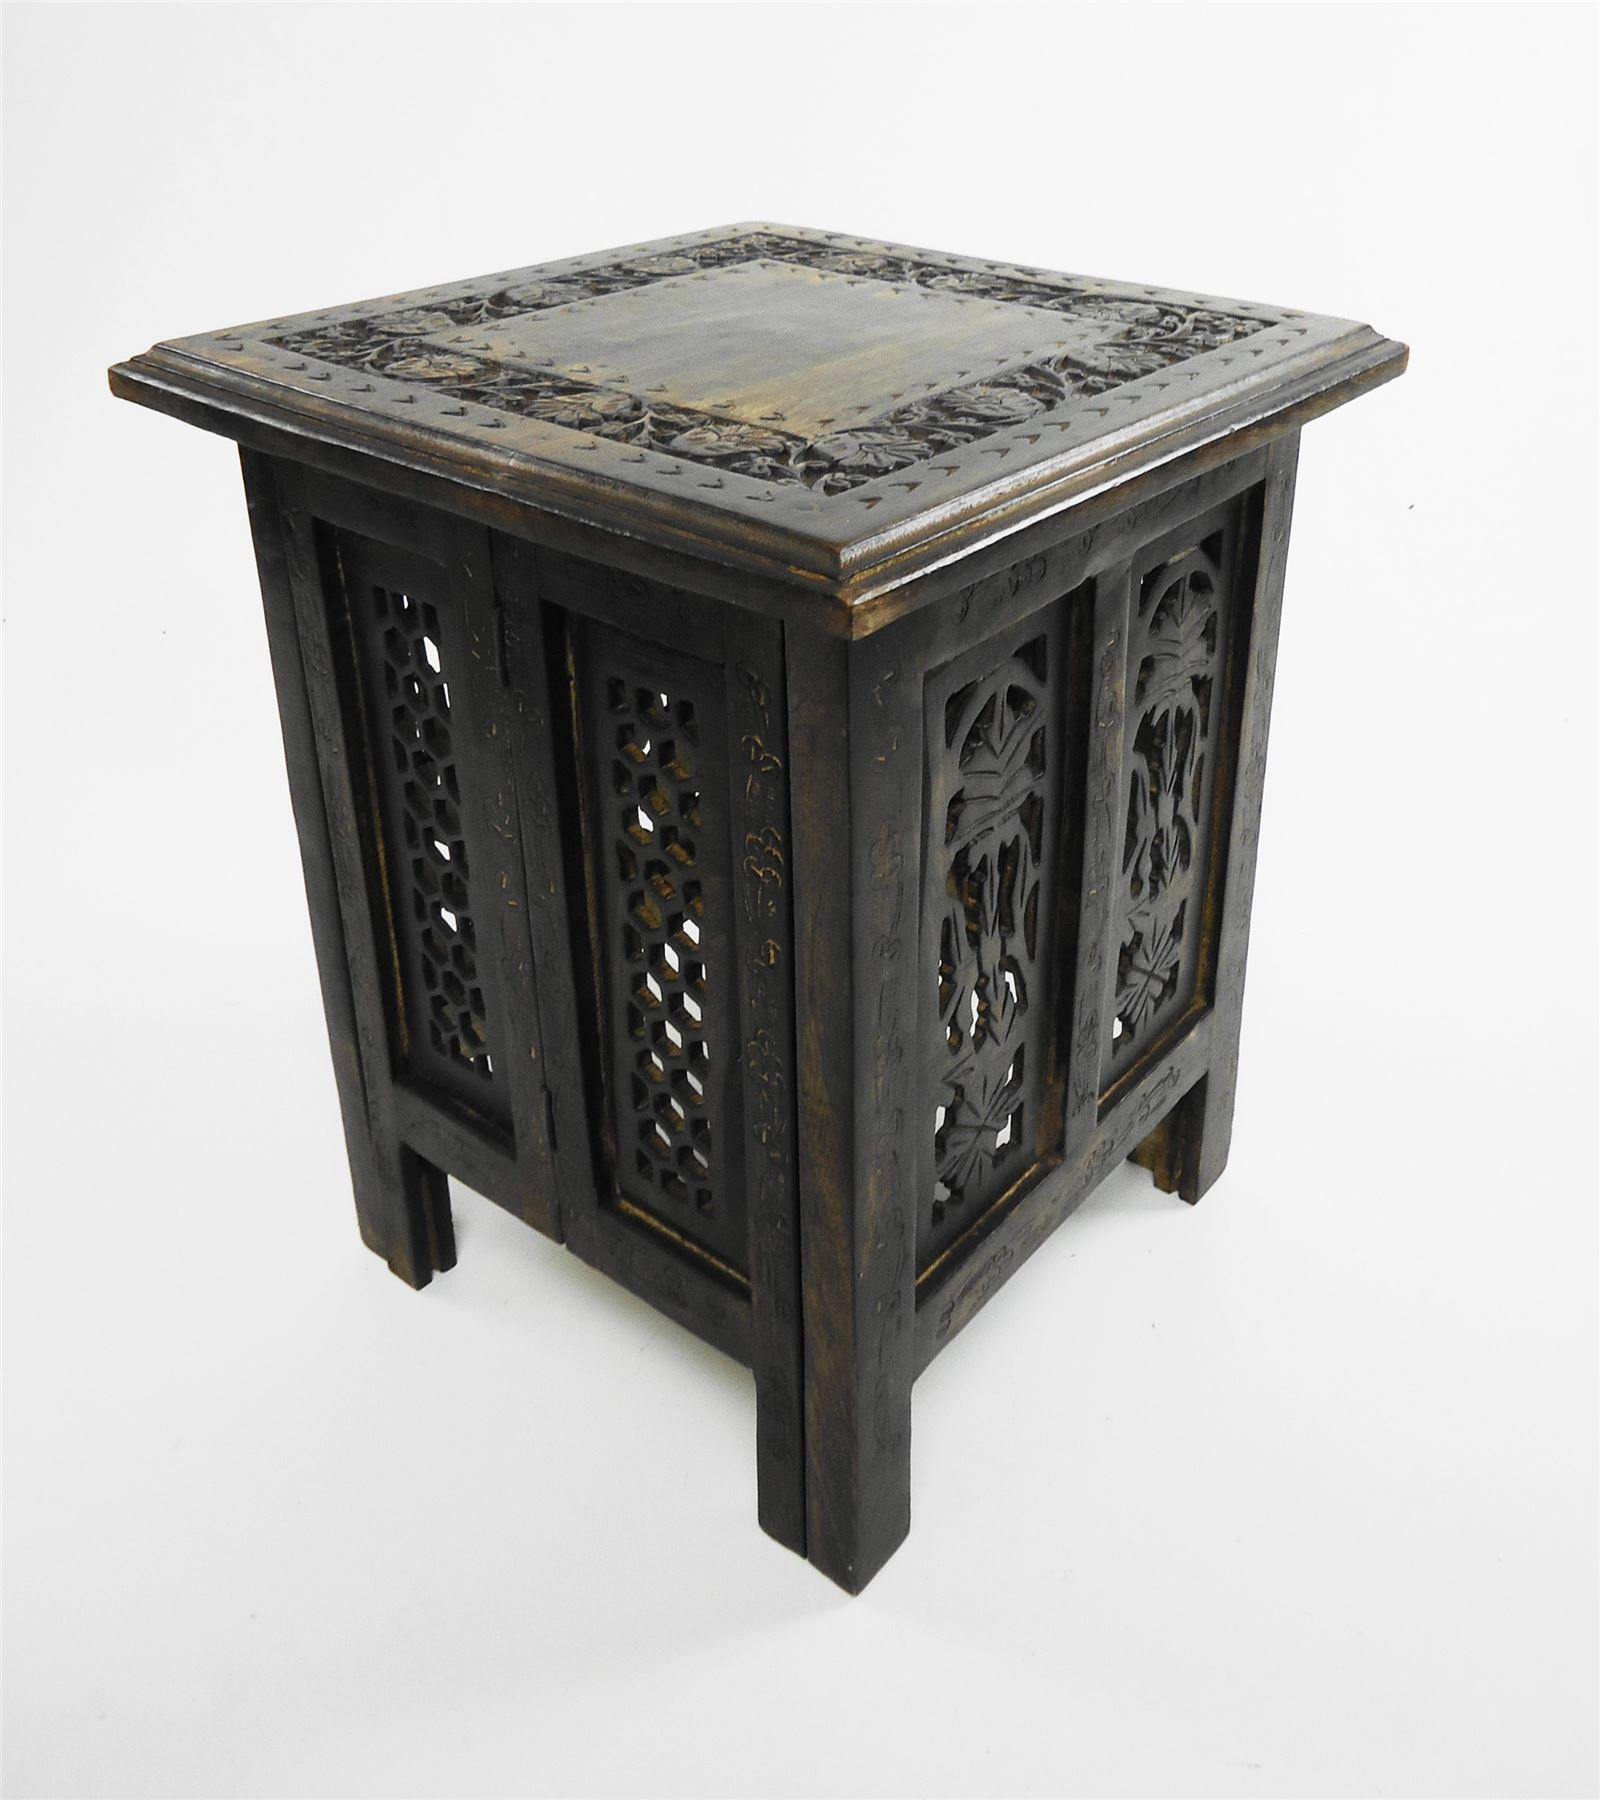 Ebay Uk Vintage Coffee Tables: Beautiful Antique Effect Hand Carved Indian Wooden Table